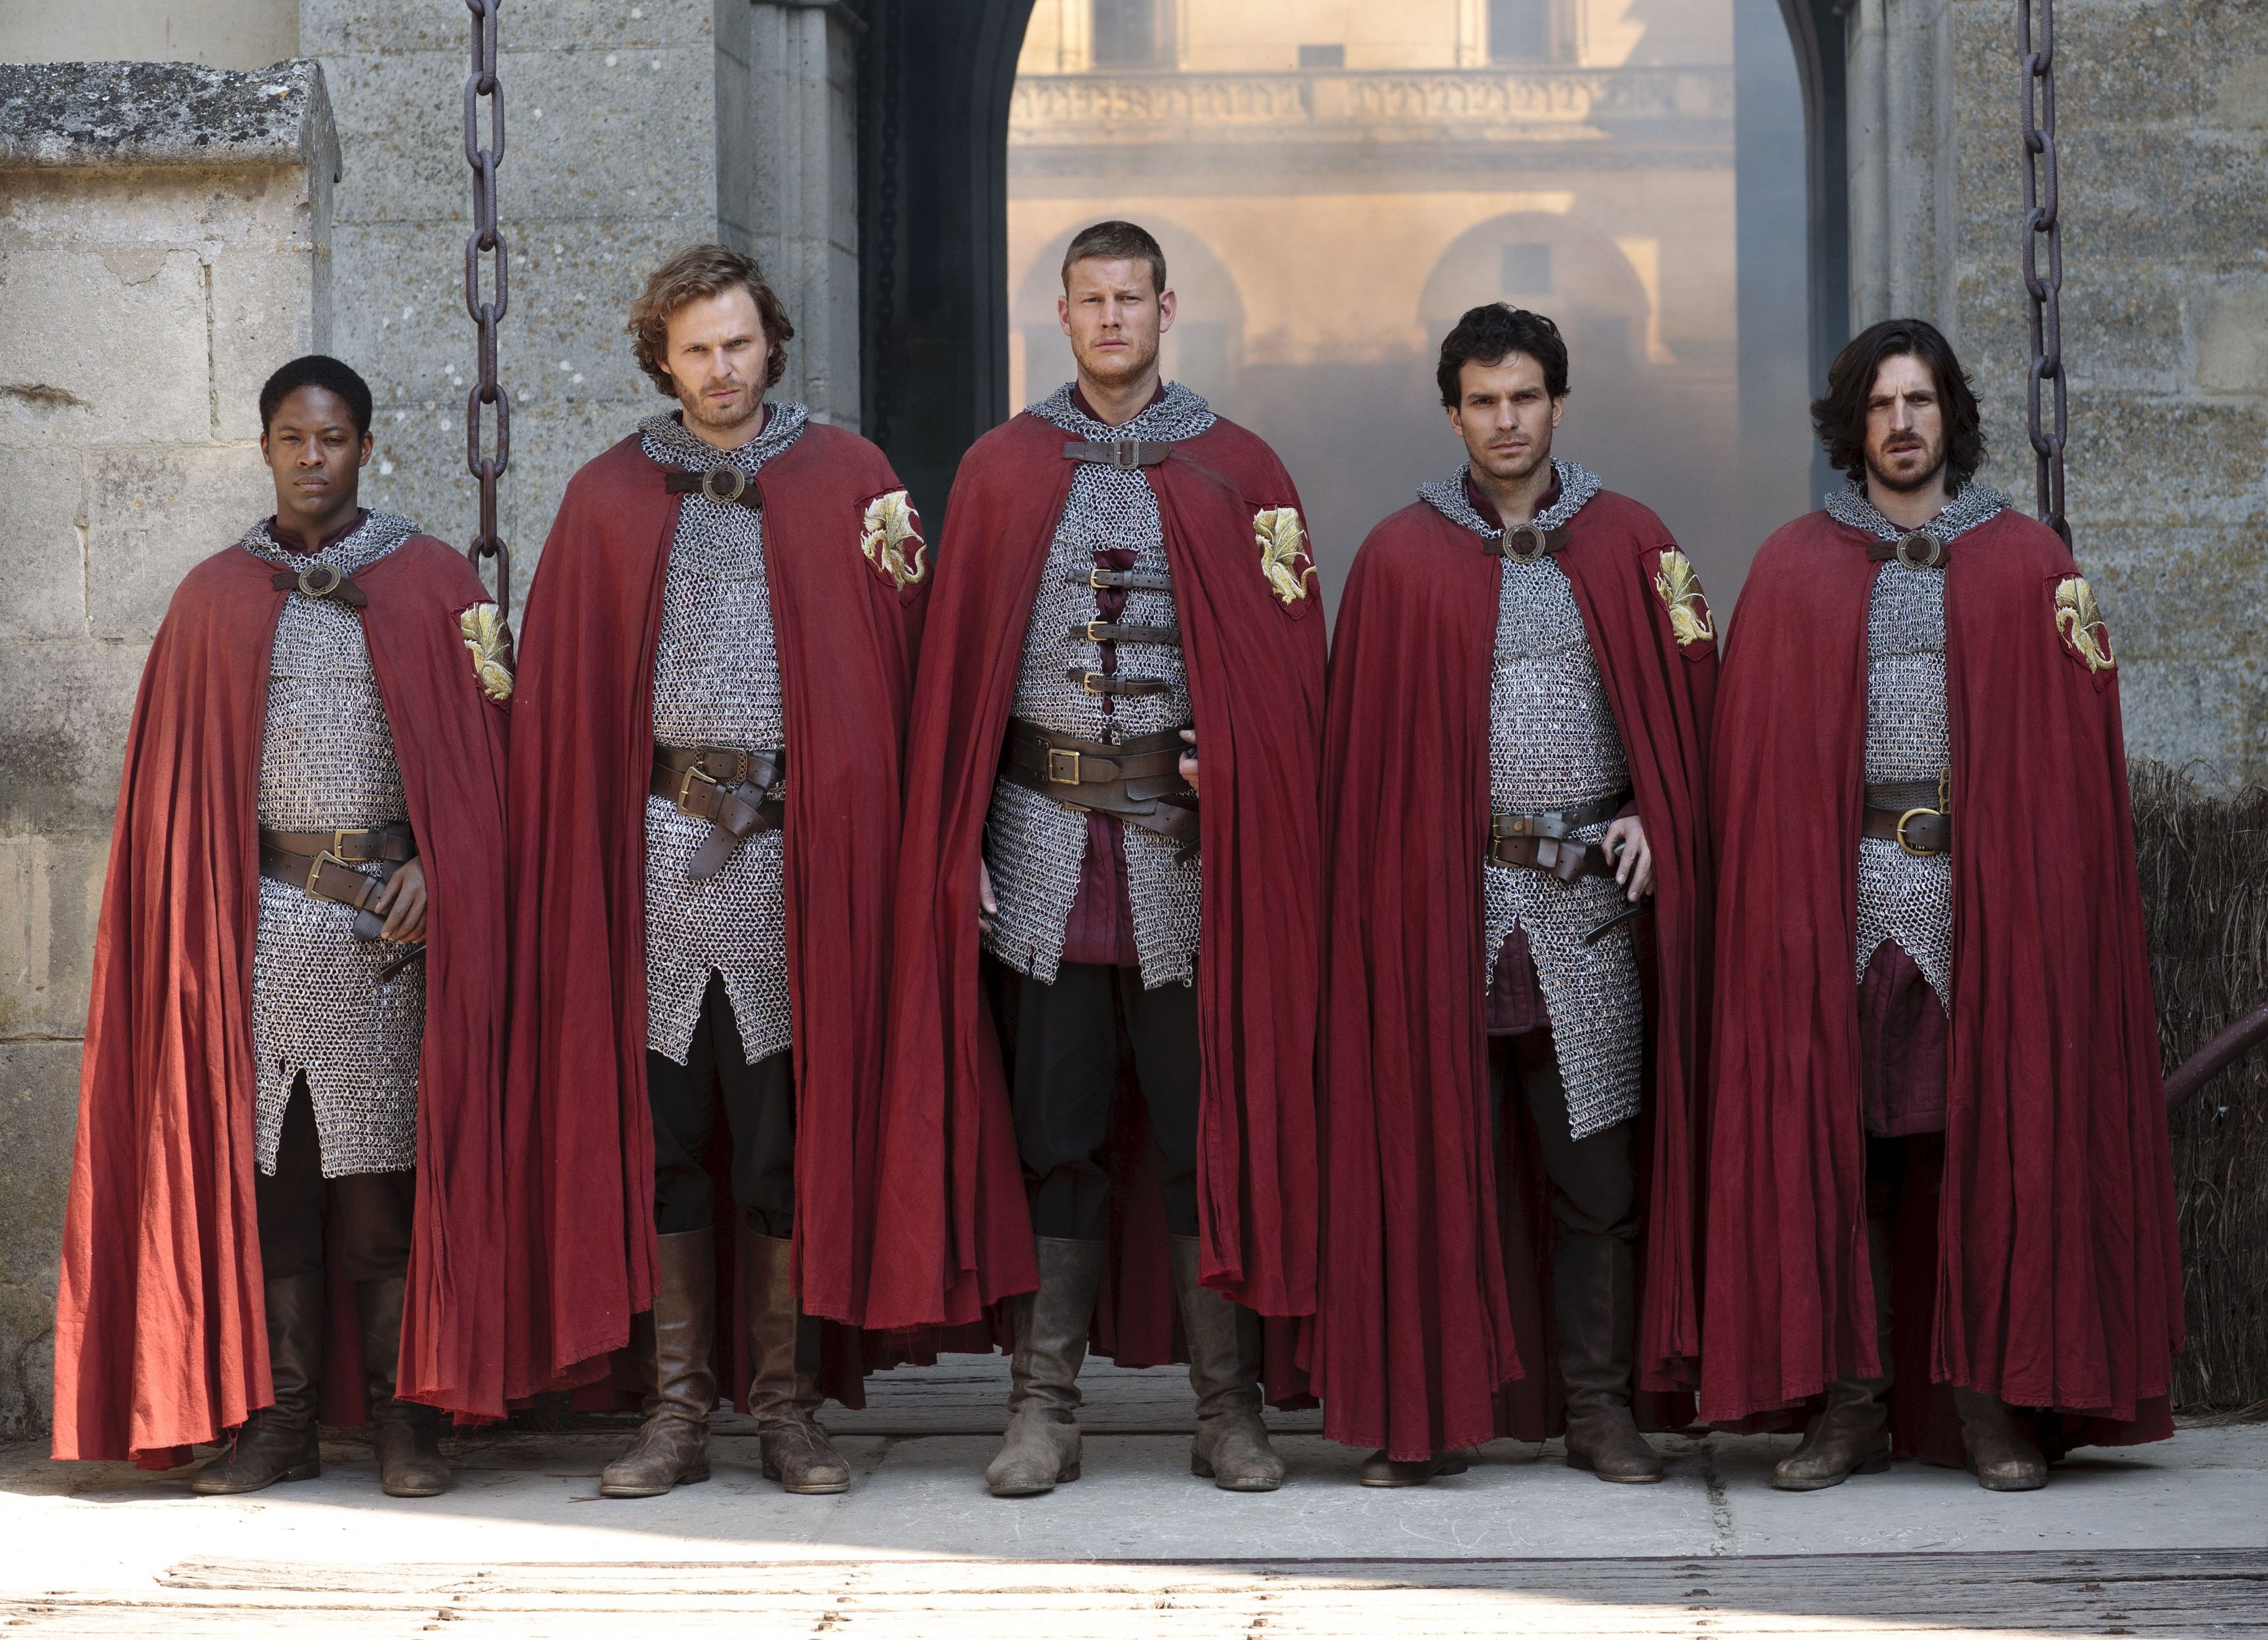 Knights of Camelot | Movies/TV/Actors | Merlin series